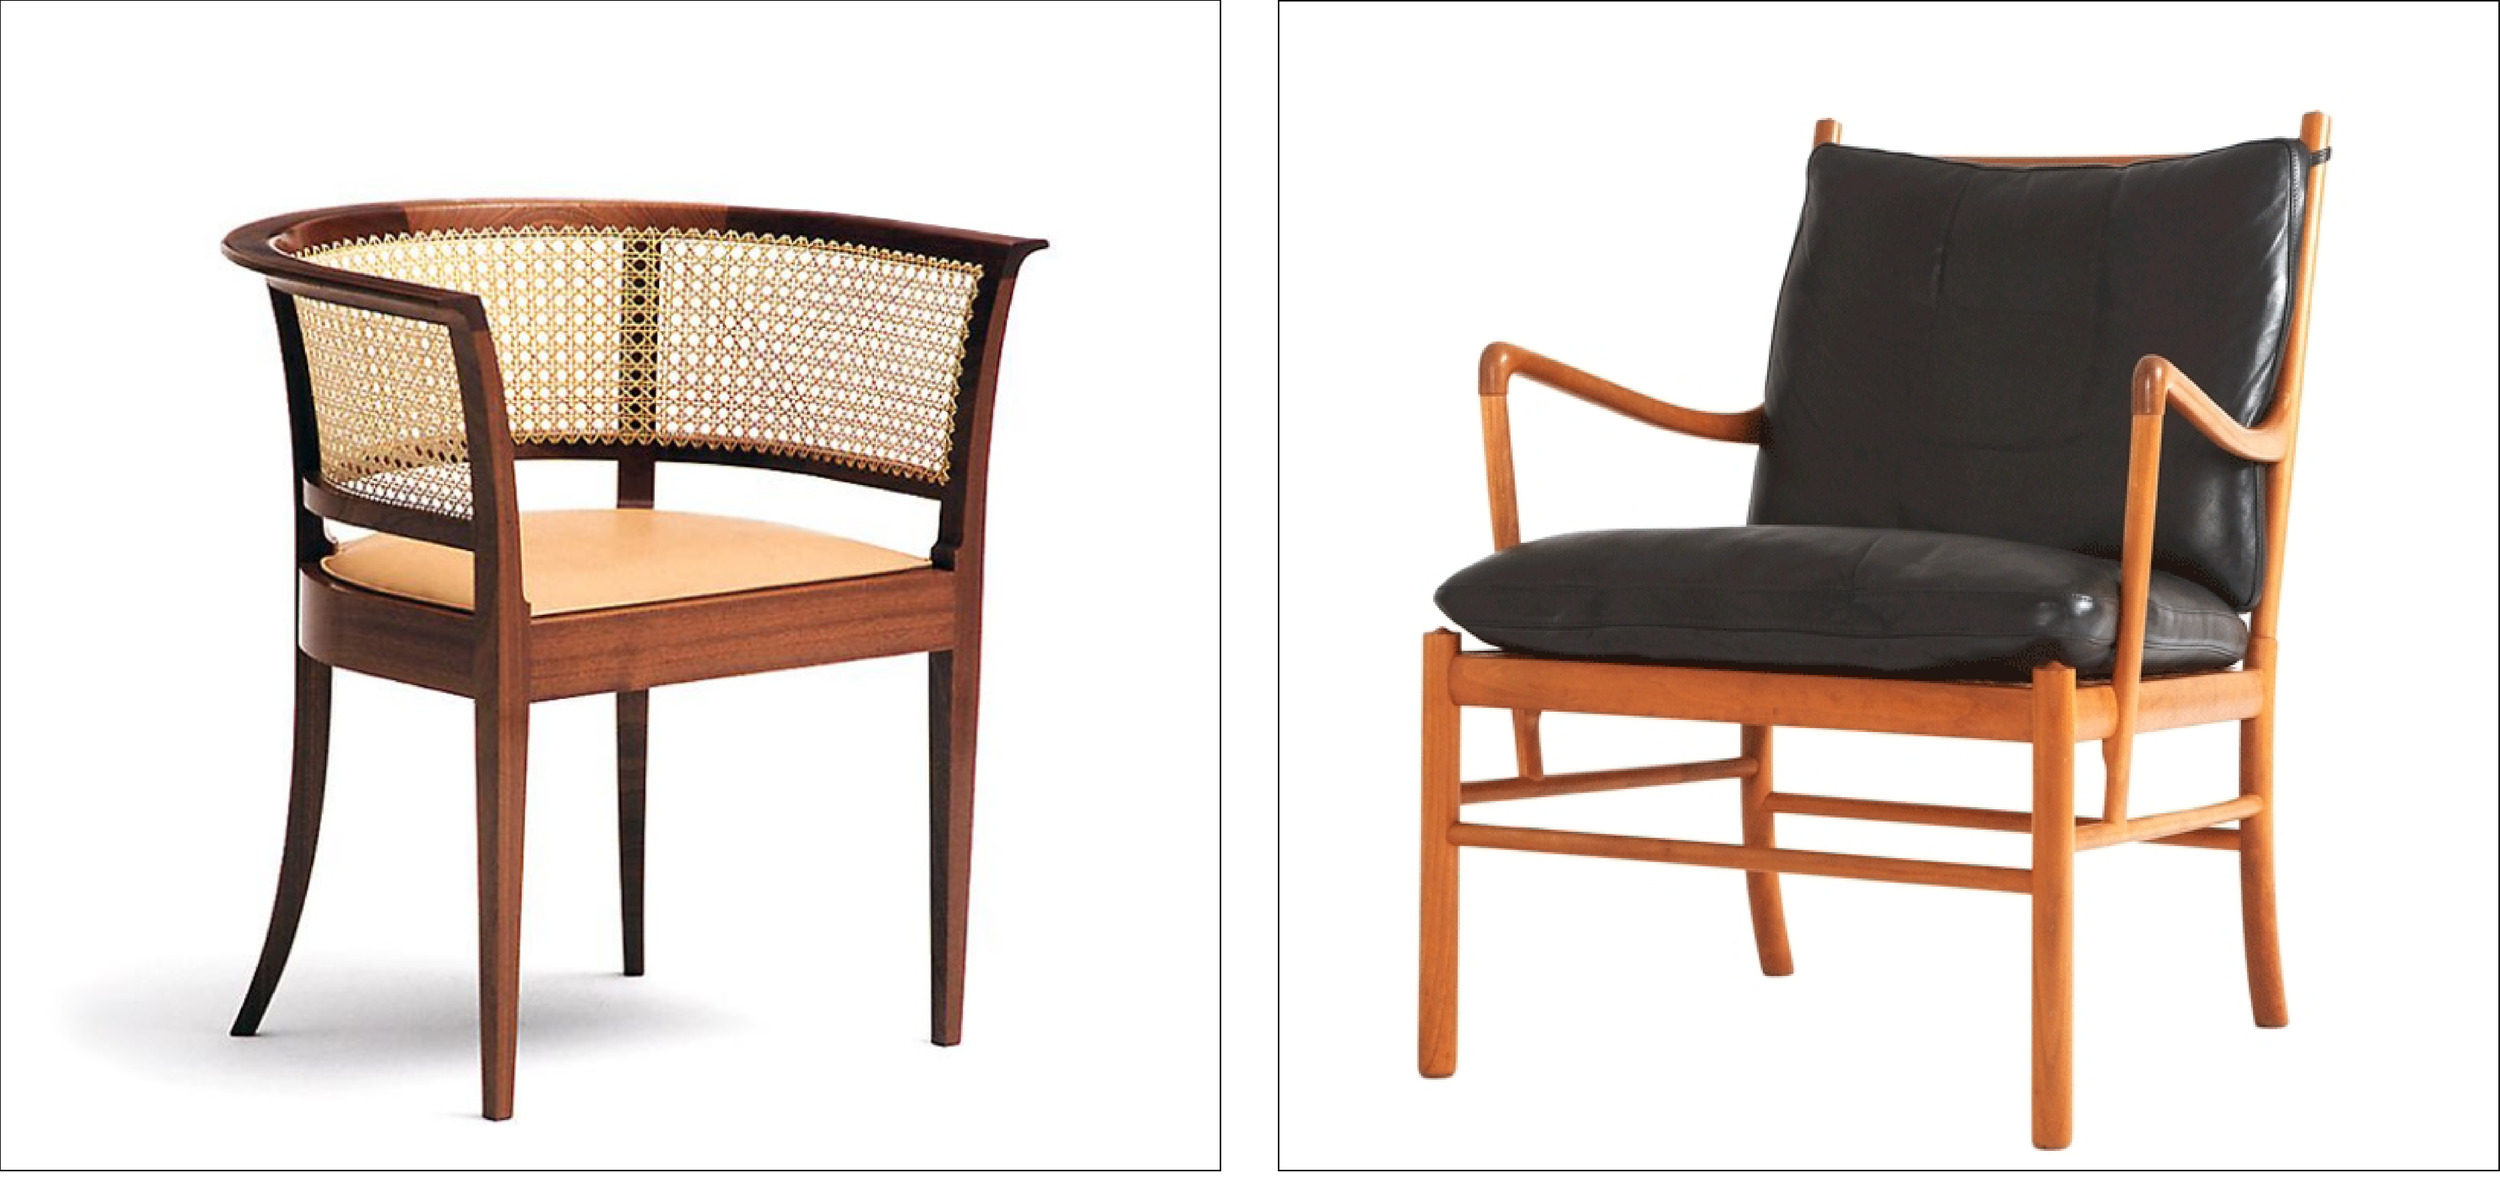 Chair for the Faaborg Museum by Kaare Klint 1914  Easy chair by Ole Wanscher 1949